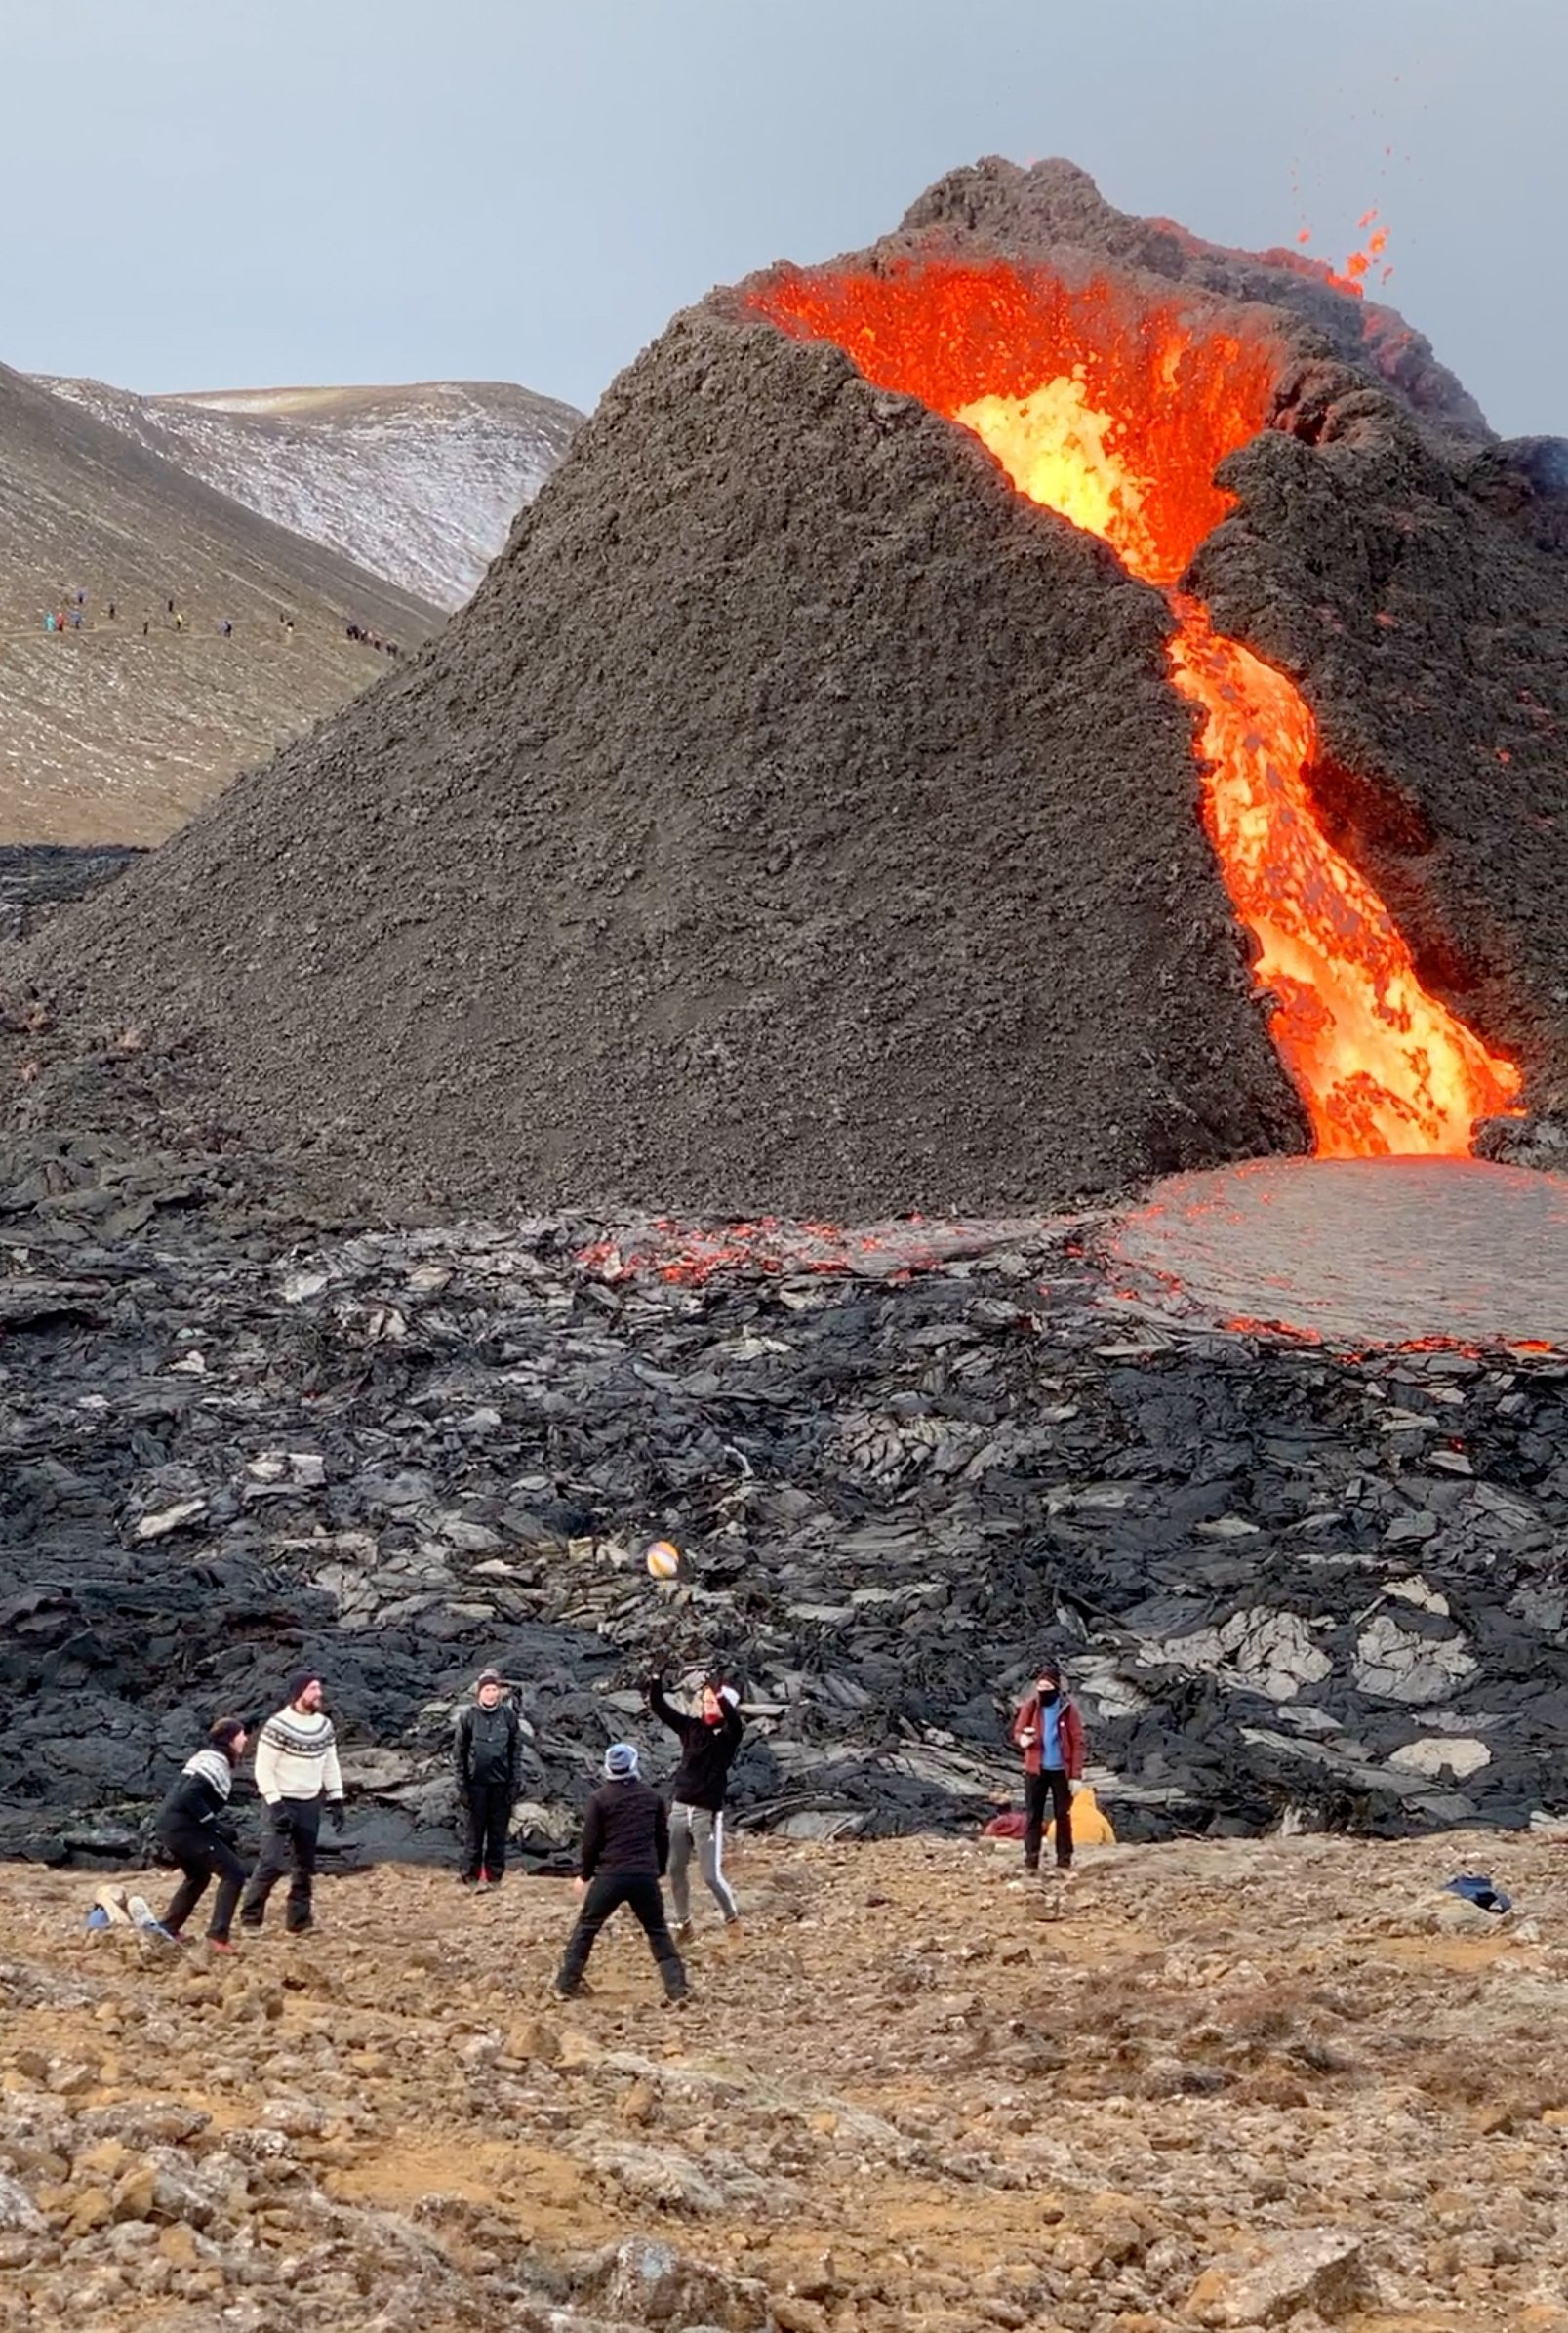 In this still image from a video posted on social media, people play volleyball near the lava-spewing Fagradalsfjall volcano in Reykjanes Peninsula, Iceland, March 27, 2021. (Rut Einarsdottir via Reuters)